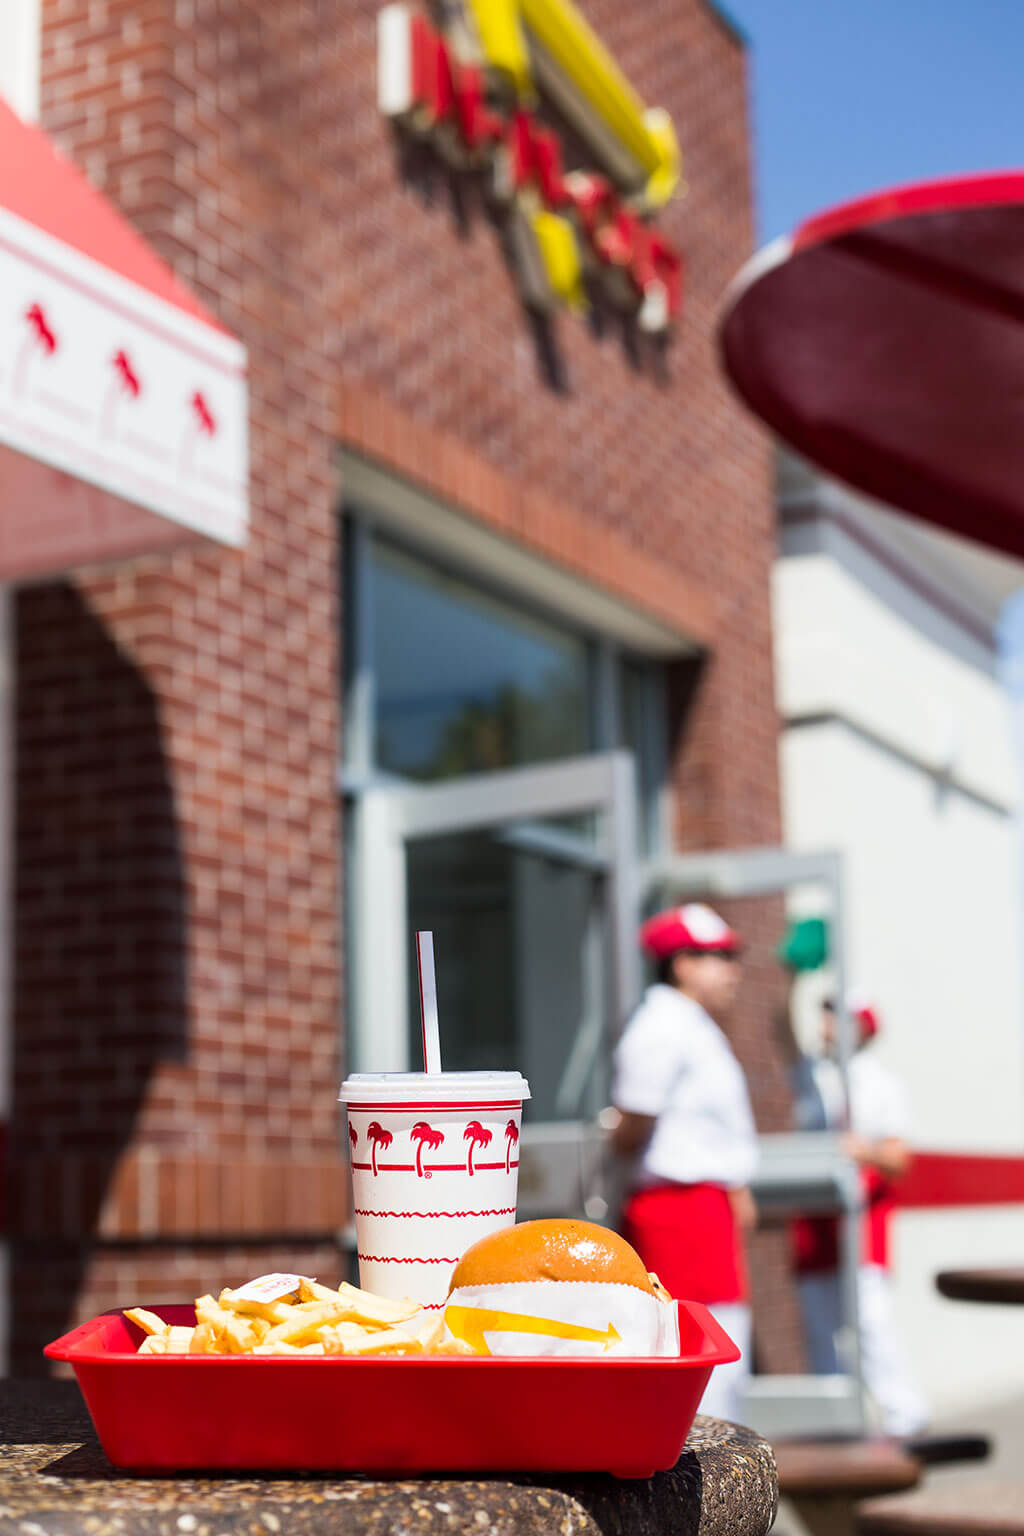 drive-swim-fly-in-n-out-burger-gilroy-california-cheeseburgers-fast-food-west-coast-original-front-entrance-burger-meal